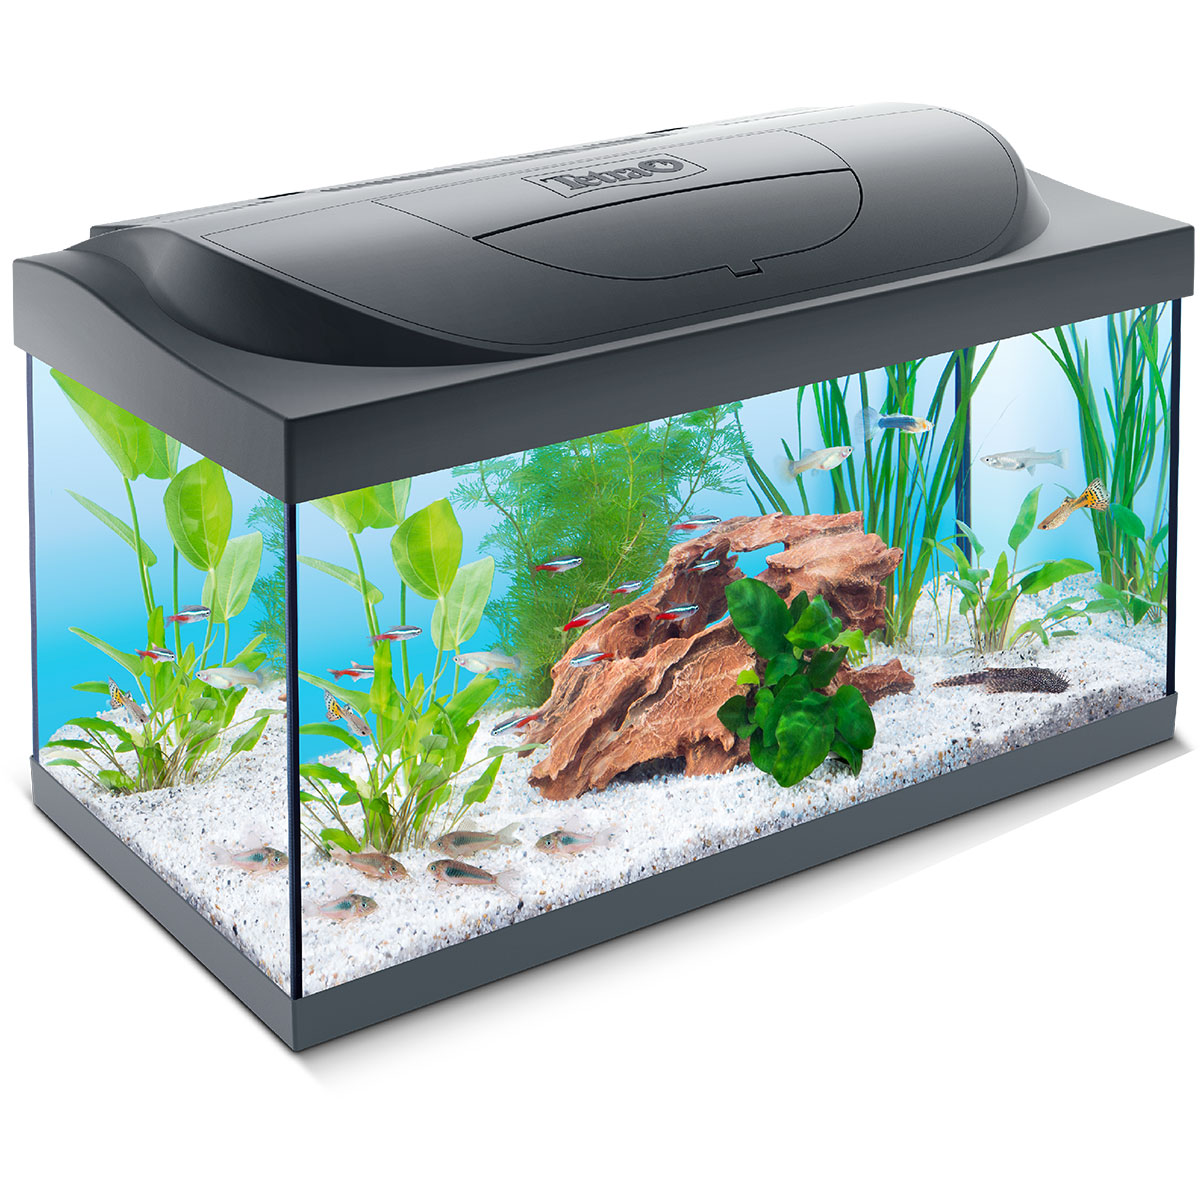 tetra capt n sharky led aquarium 54l themenaquarium aquarien f r kinder ebay. Black Bedroom Furniture Sets. Home Design Ideas